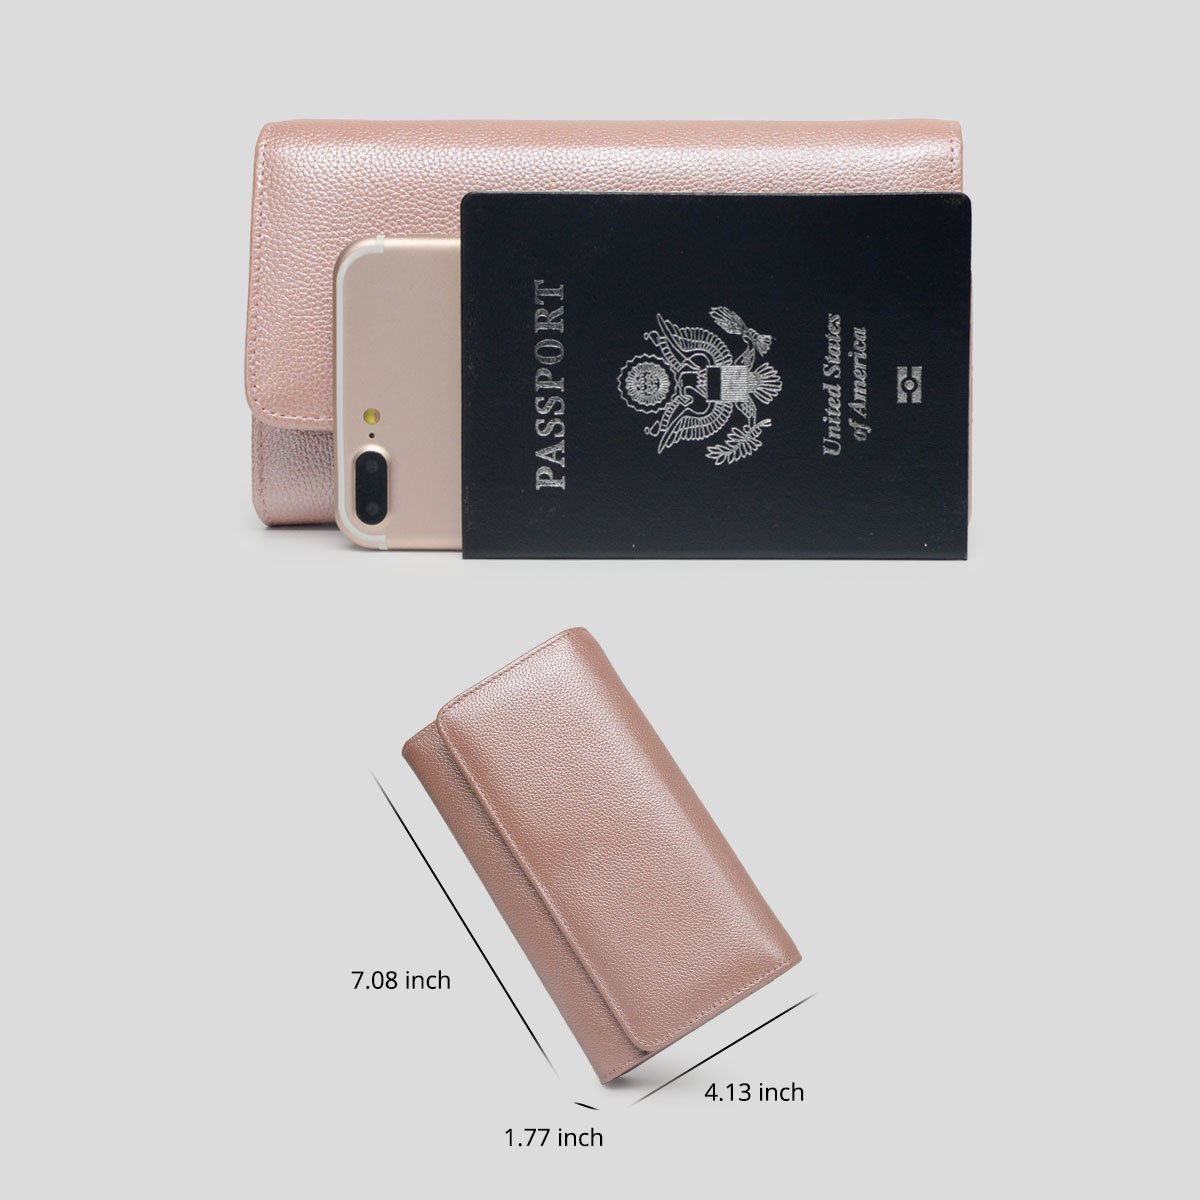 Women RFID Leather Trifold Wallet Cossbody Purse Clutch with Chain Strap (Rose Gold) by Bveyzi (Image #7)